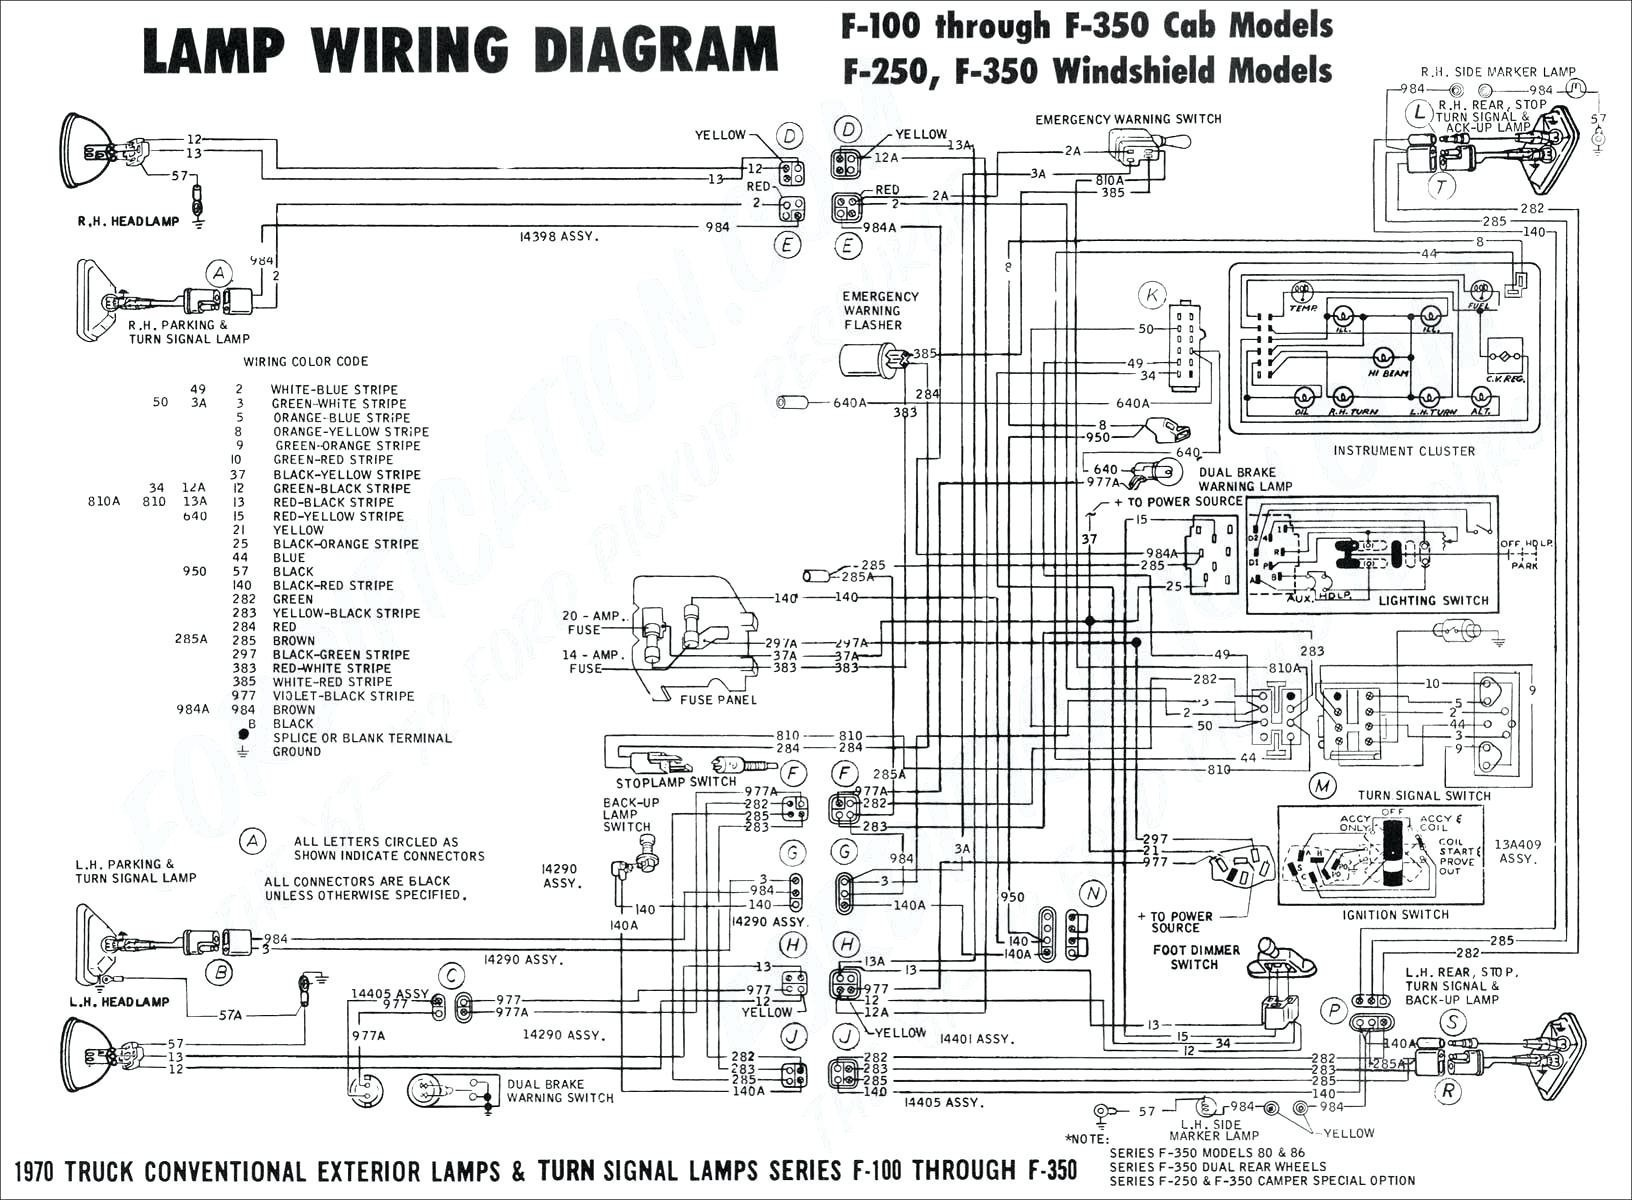 Wiring Diagram for Universal Turn Signal Switch Valid Wiring Diagrams for Turn  Signal Best Stop Turn